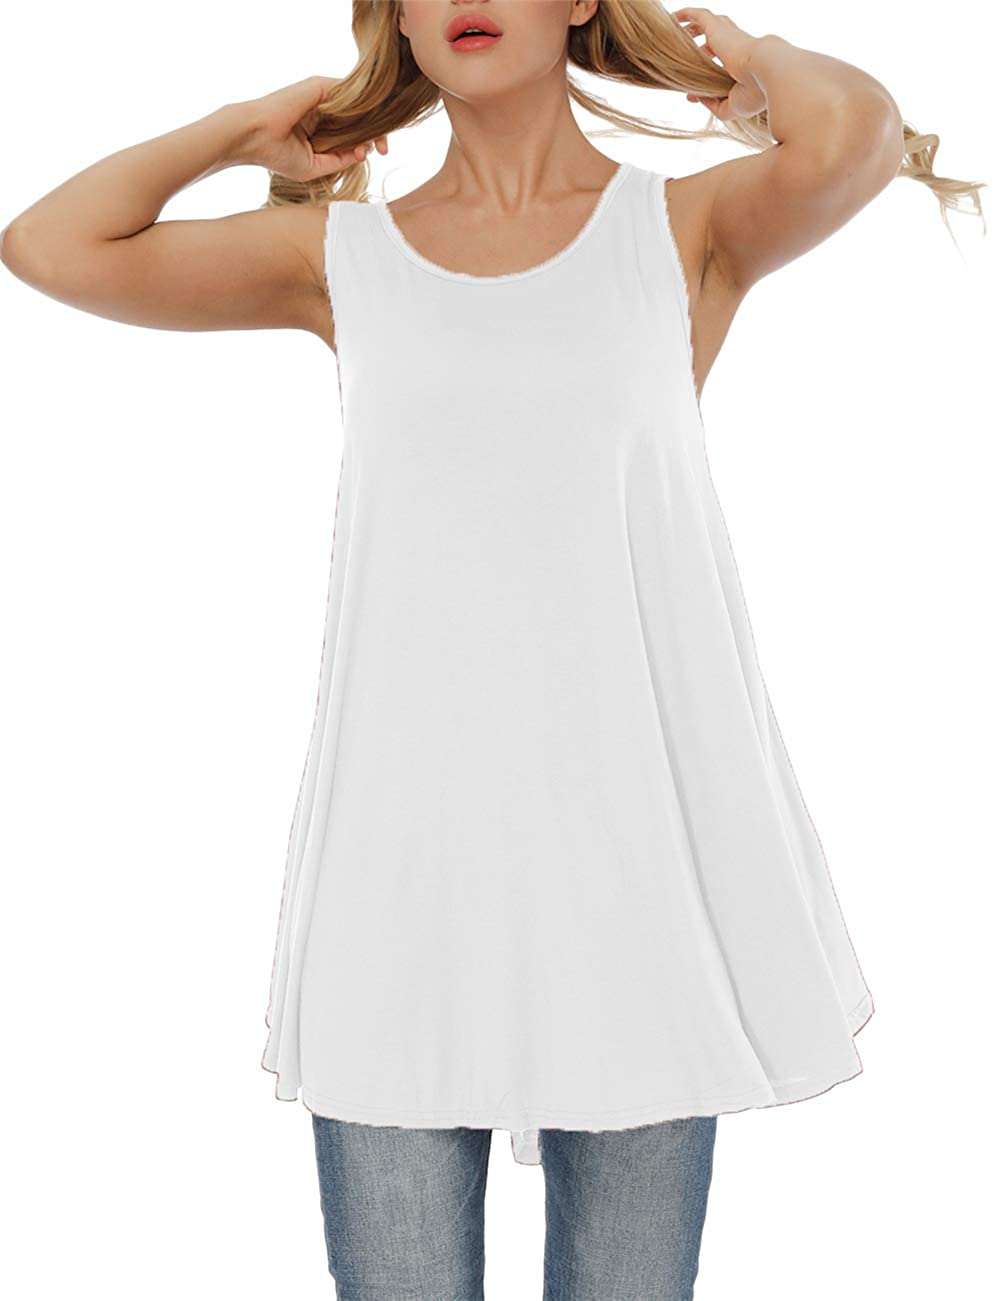 Heftxall Women's Plus Size Solid Sleeveless Tunic Round Neck Flowy Tank Tops Blouse Shirts